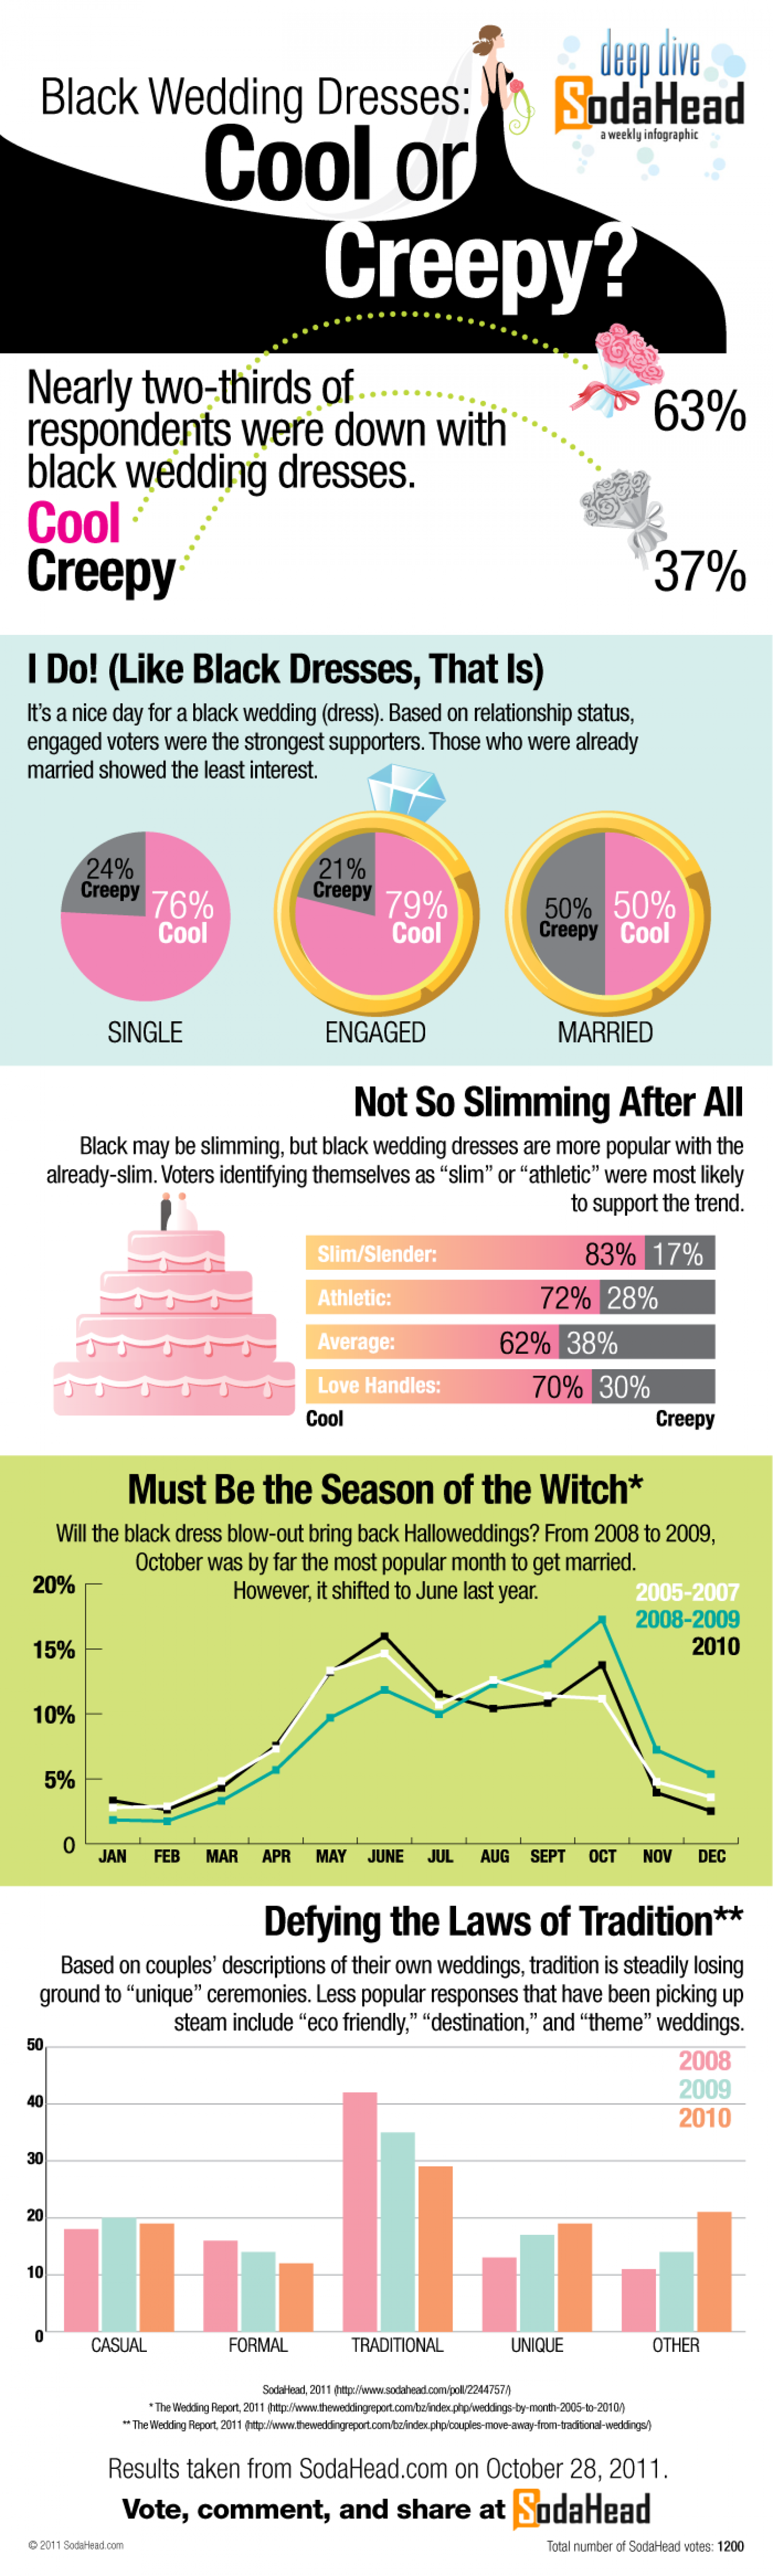 Black Wedding Dresses: Cool or Creepy? Infographic